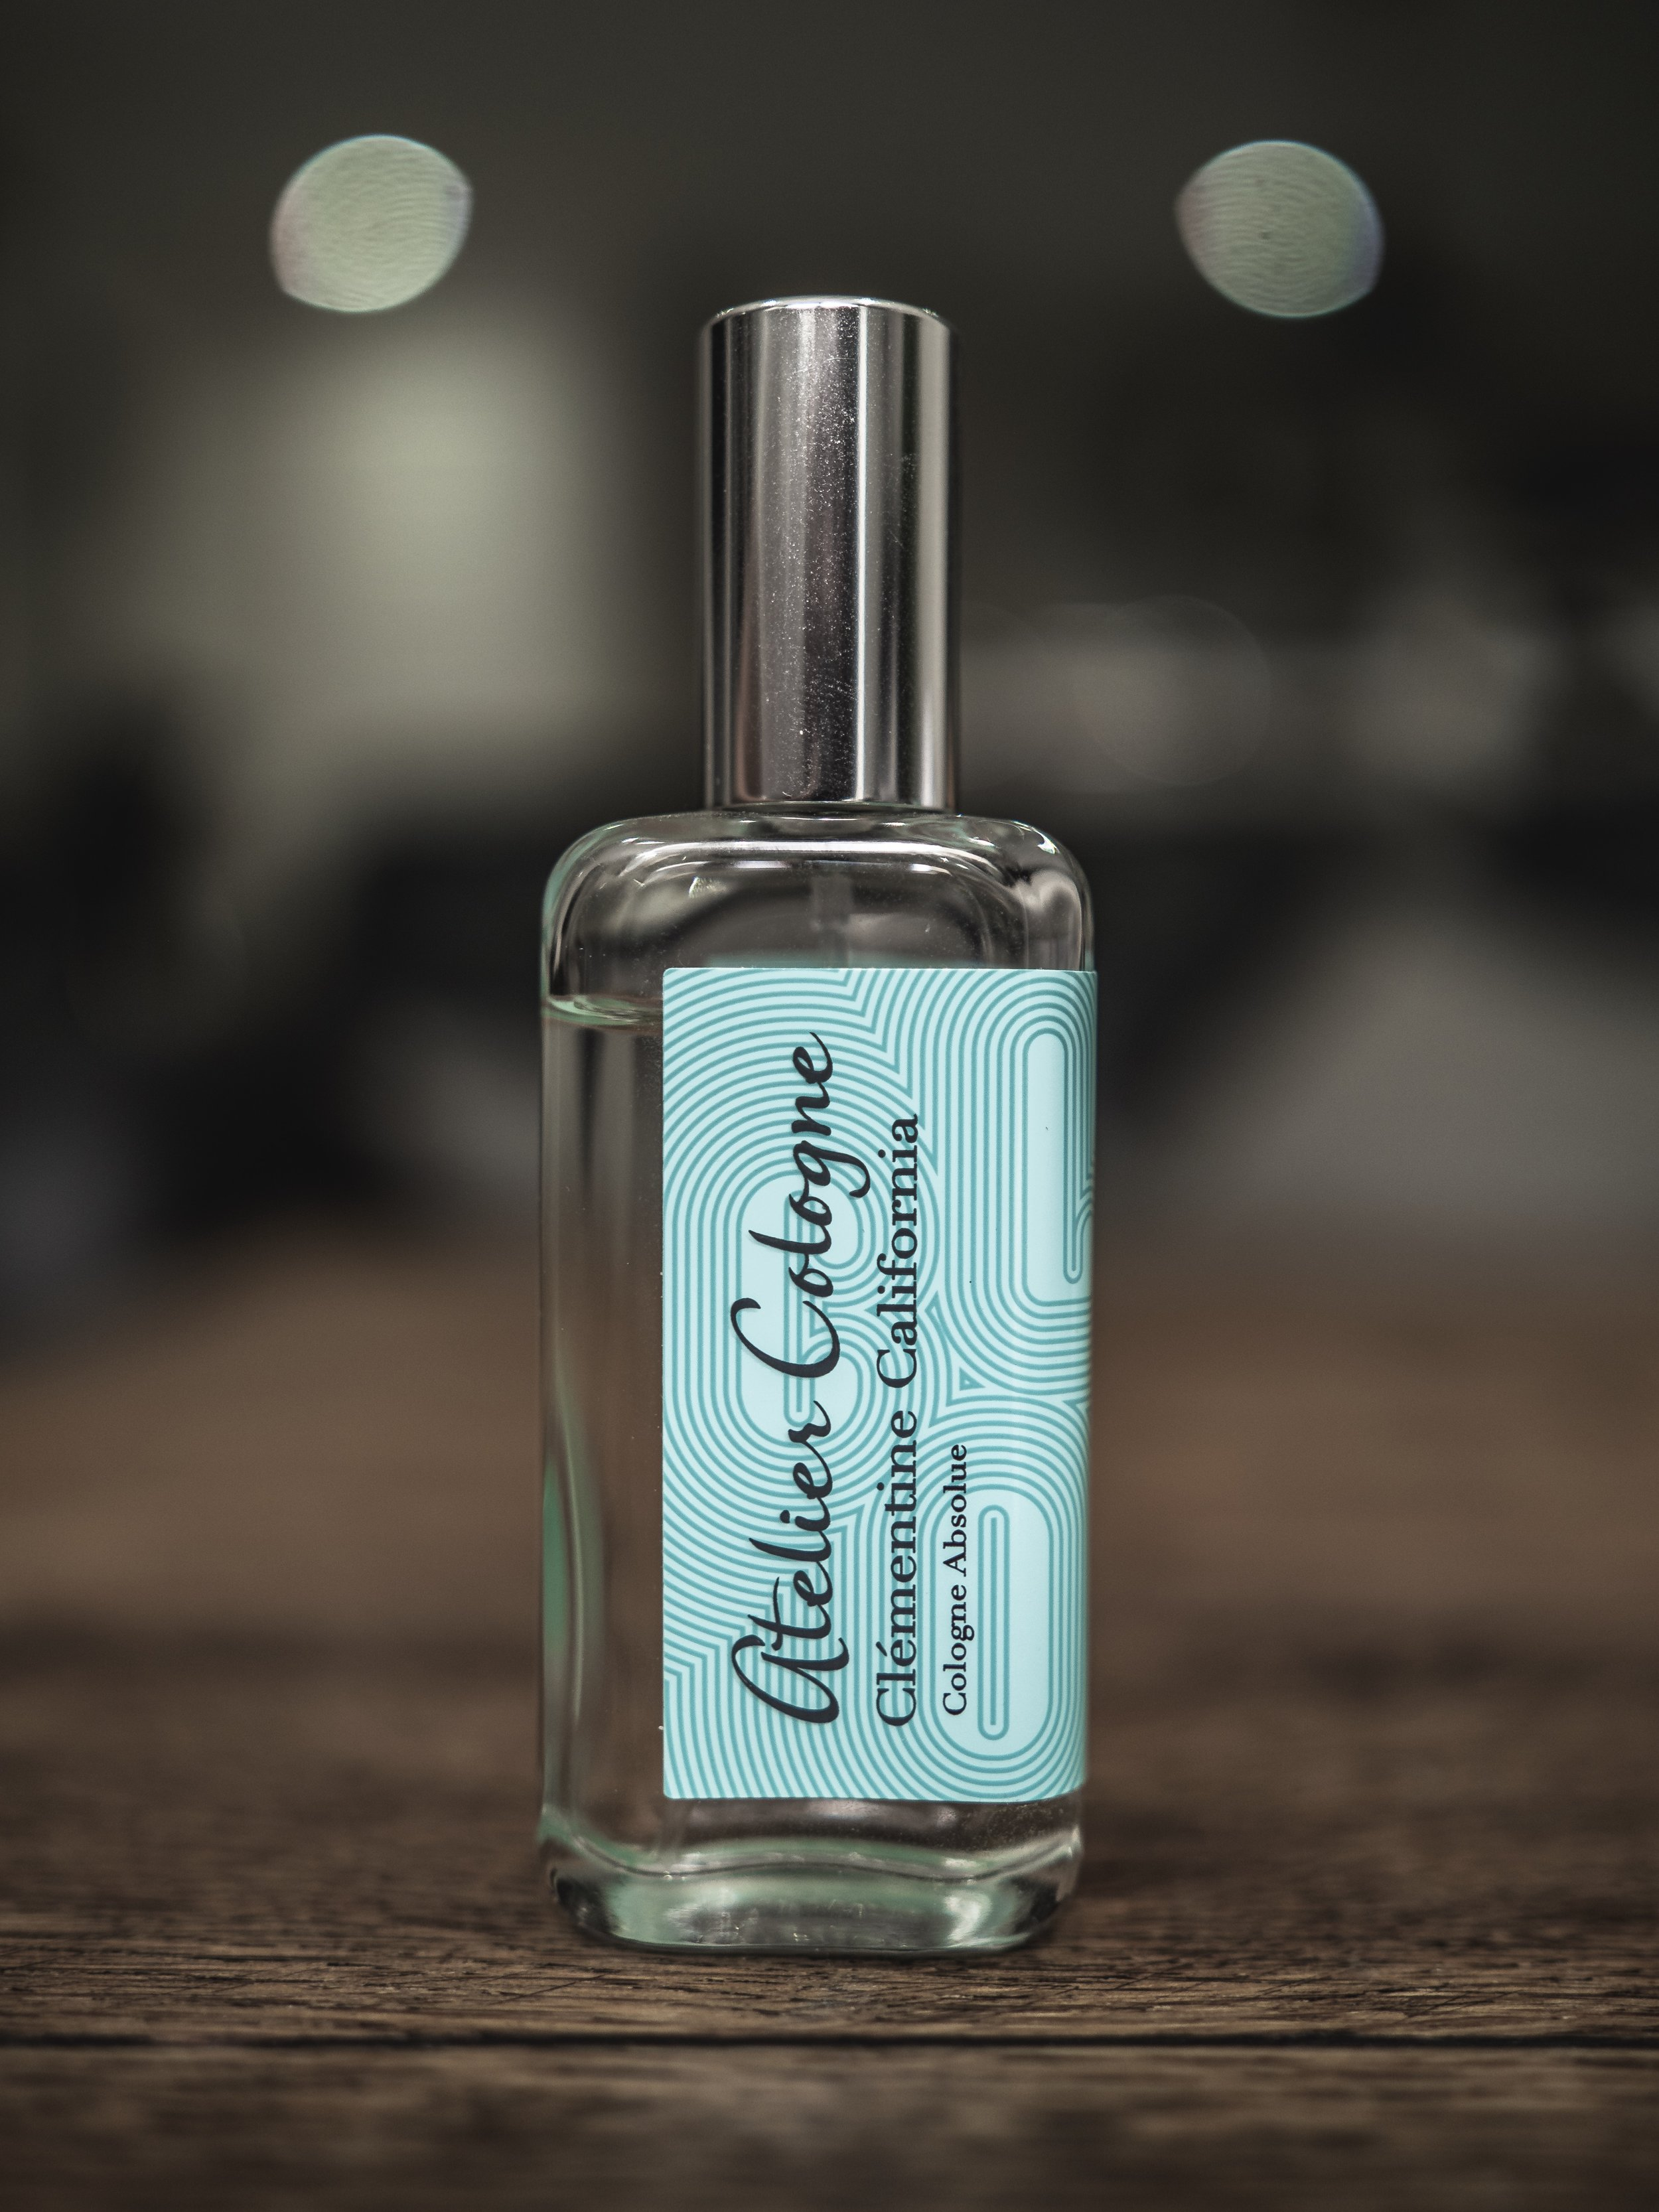 Atelier Cologne Clementine California Fragrance Review